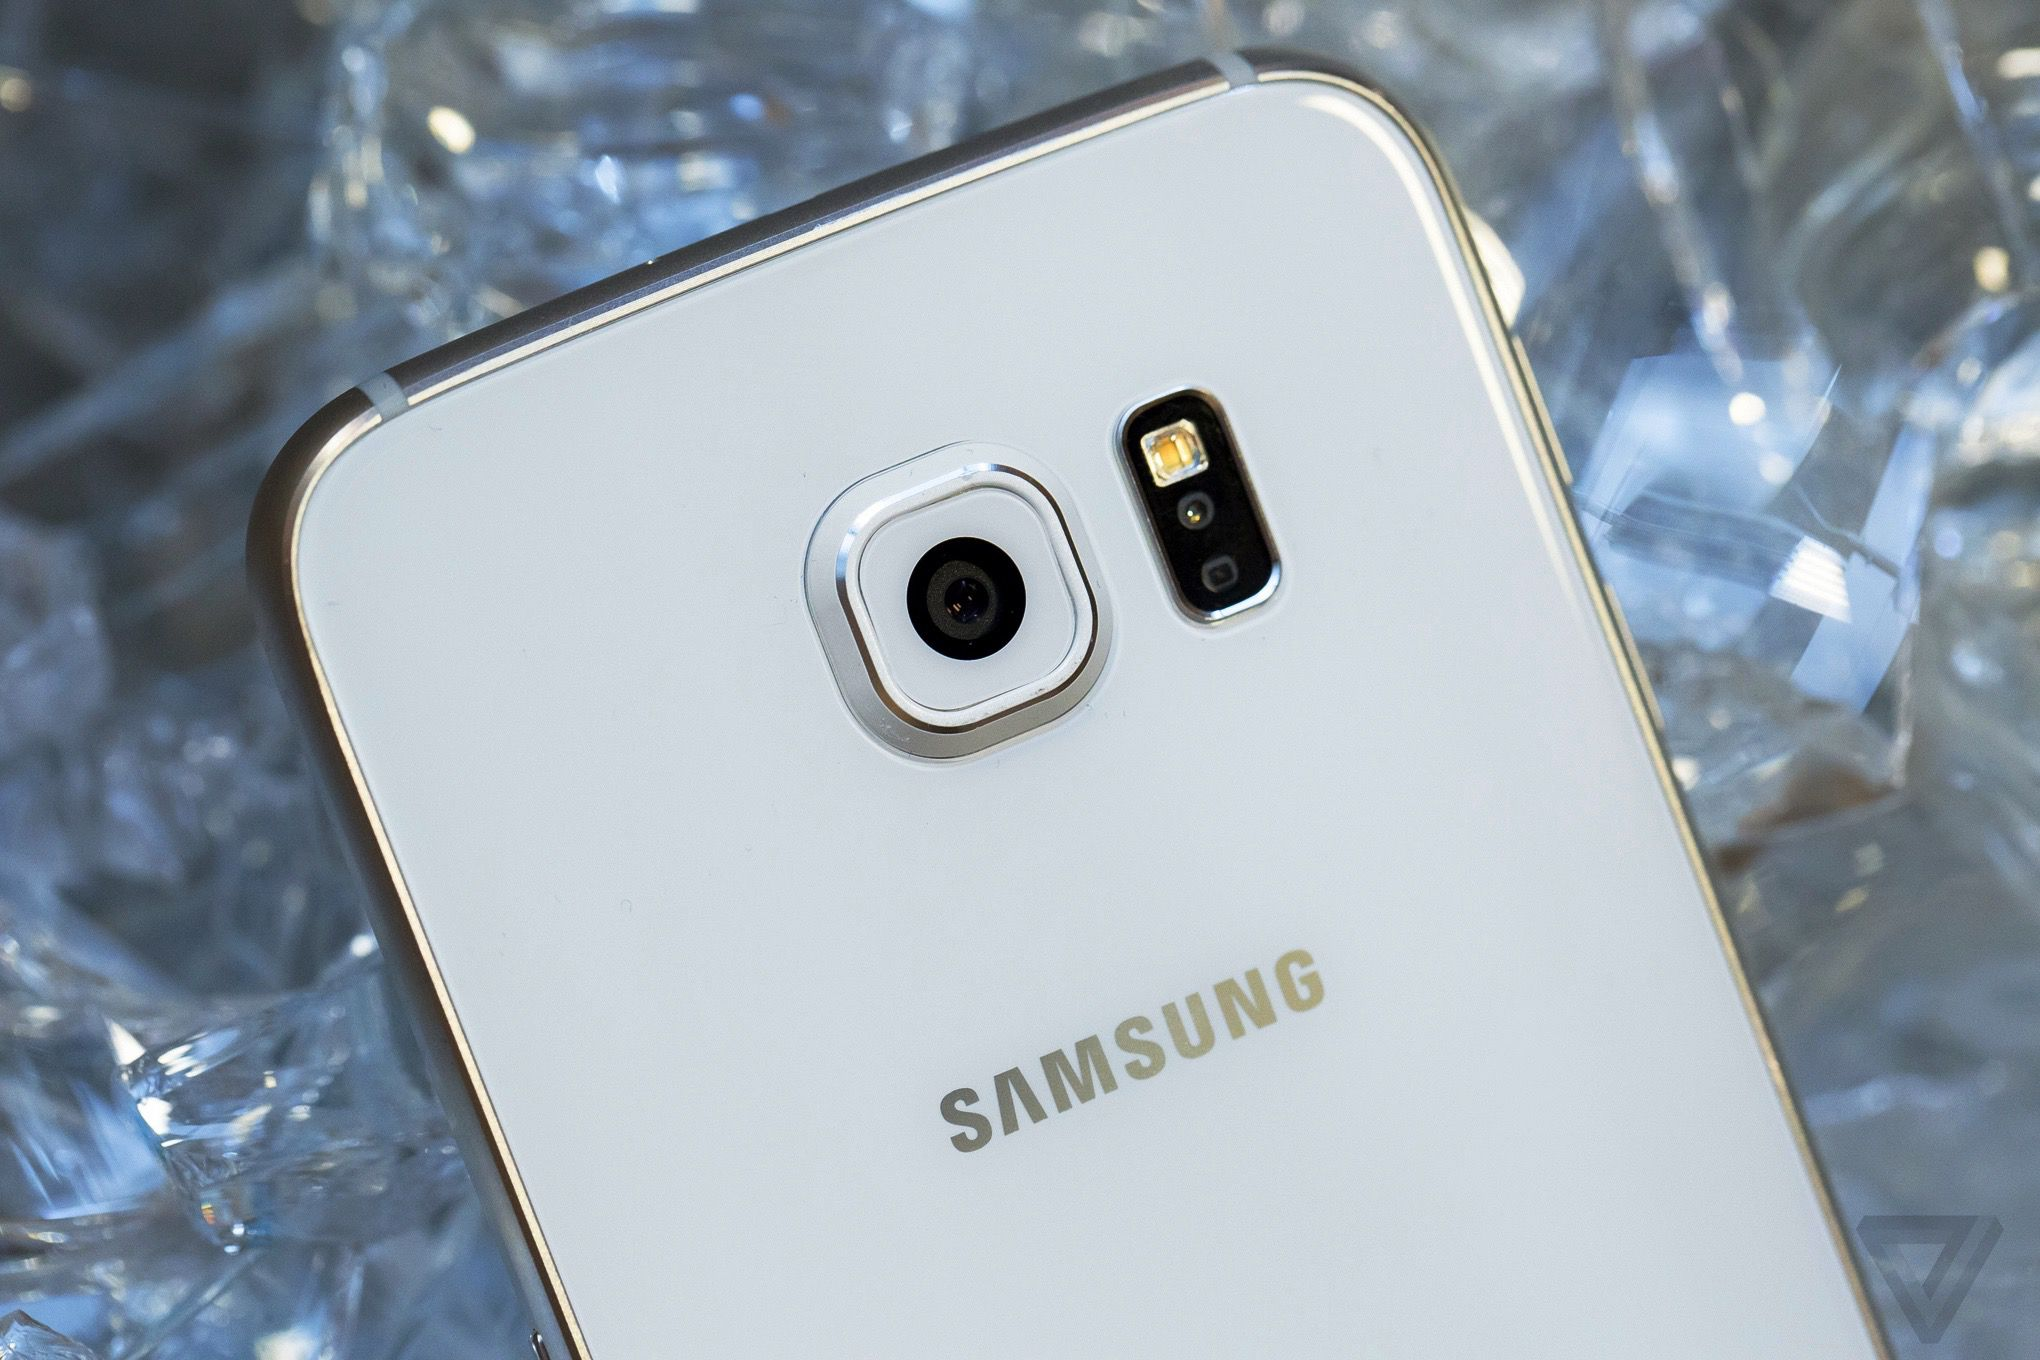 Galaxy S6 review images